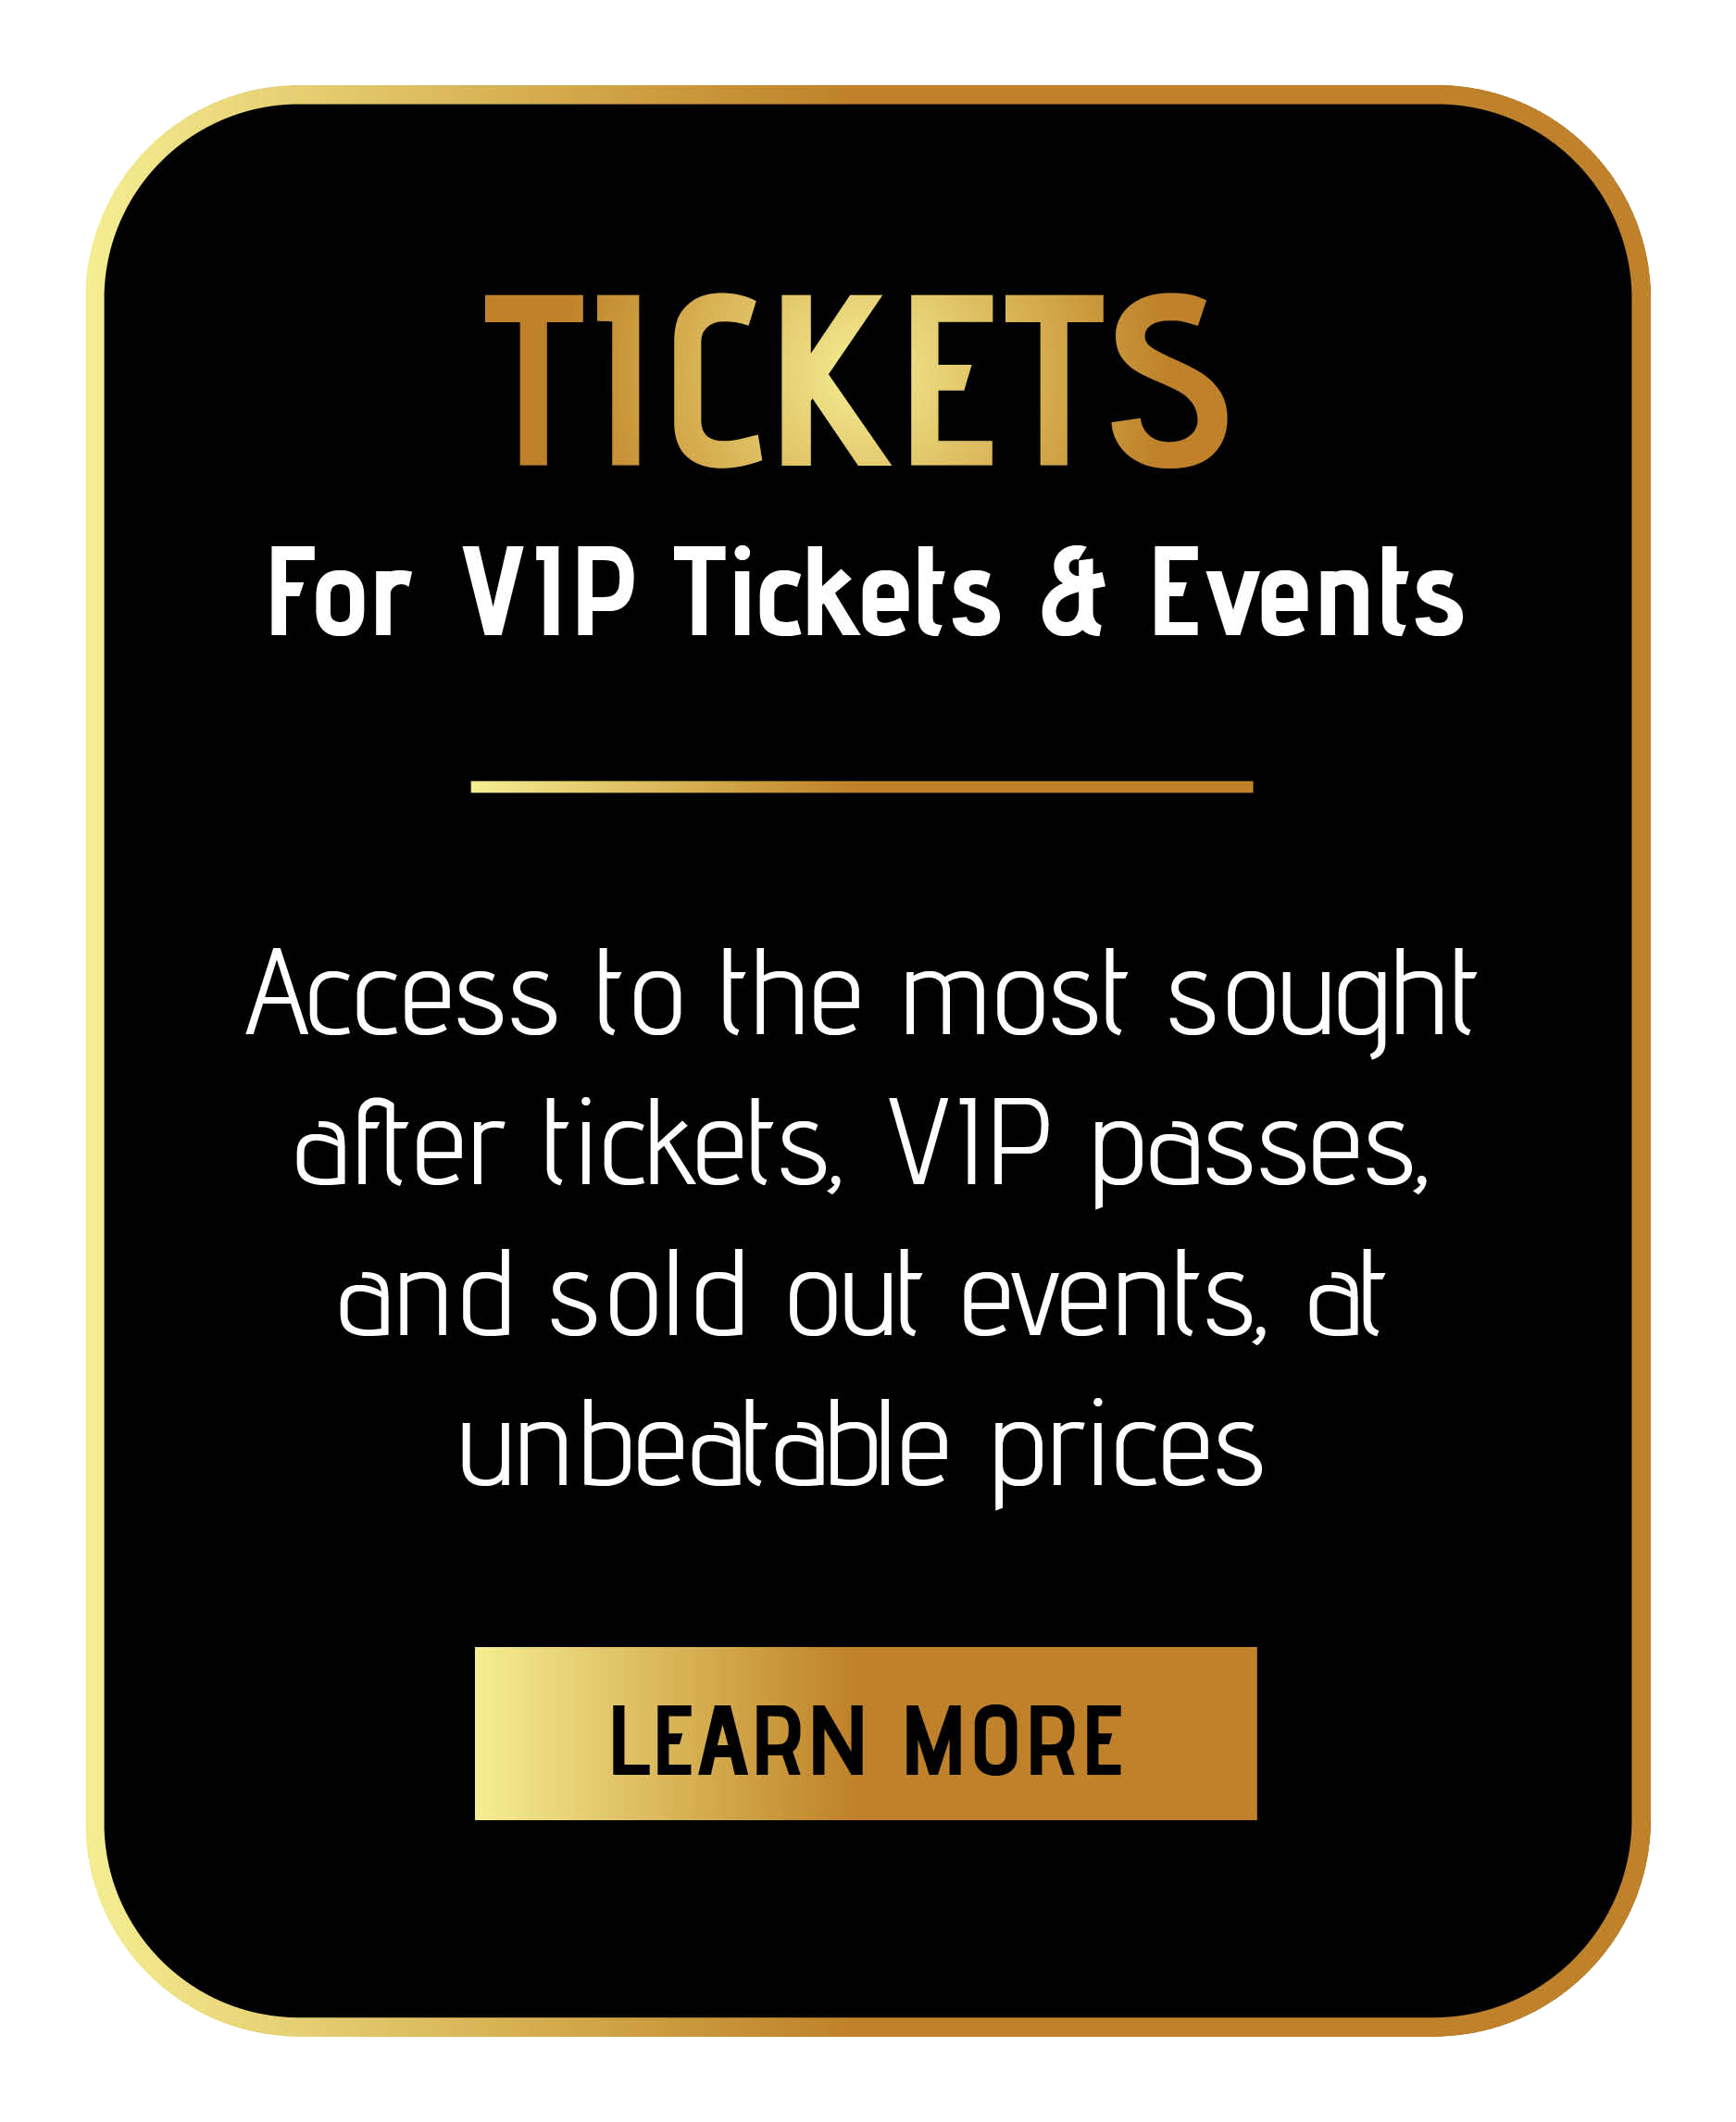 join sincura tickets membership for tickets to exclusive events at unbeatable prices